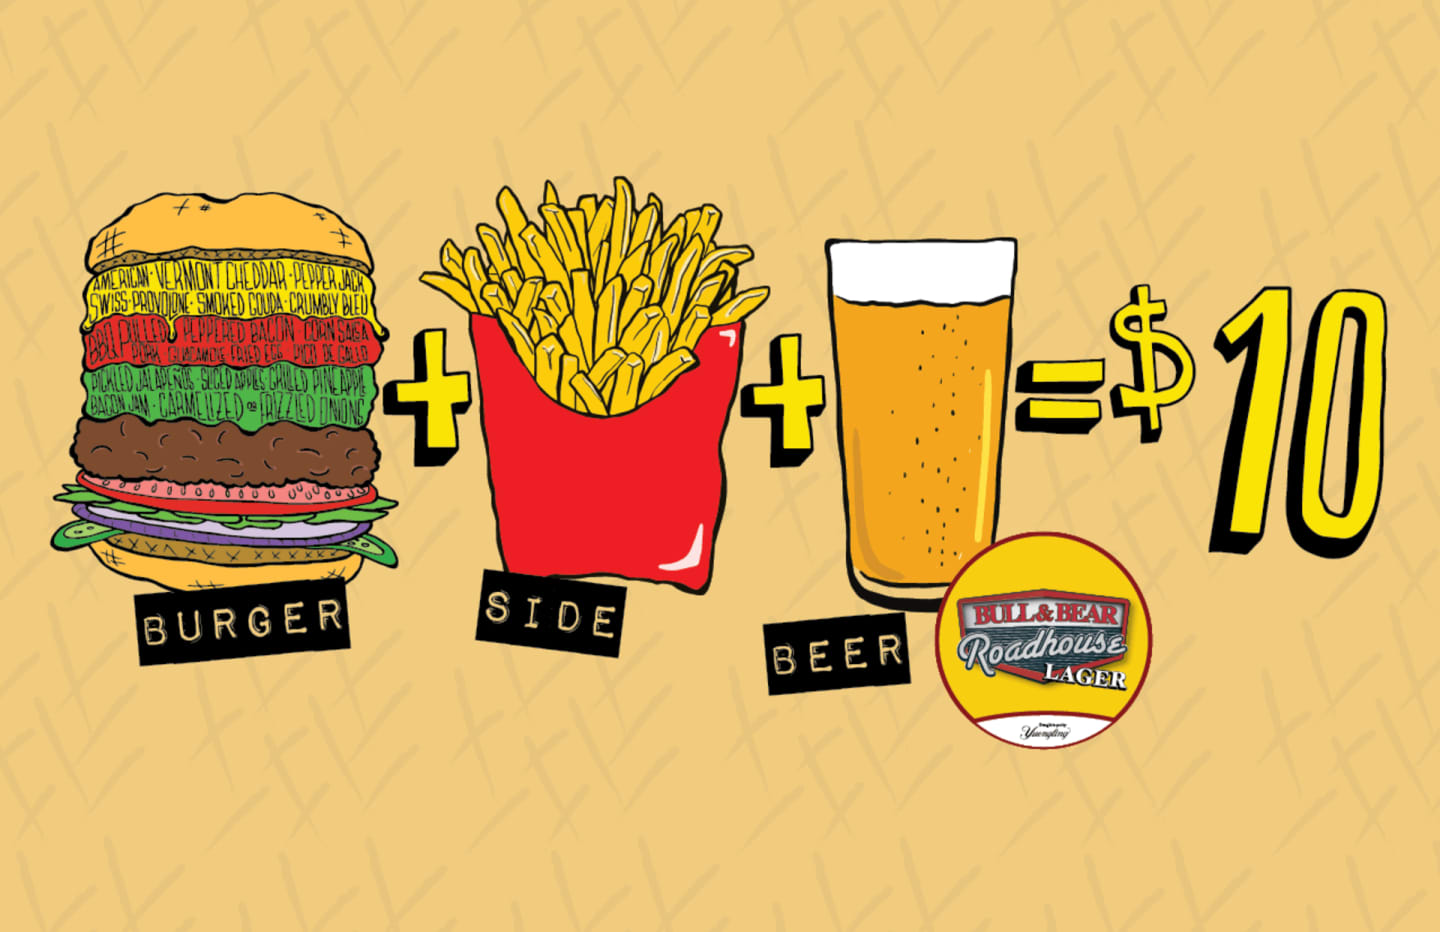 burger + side + beer = $10